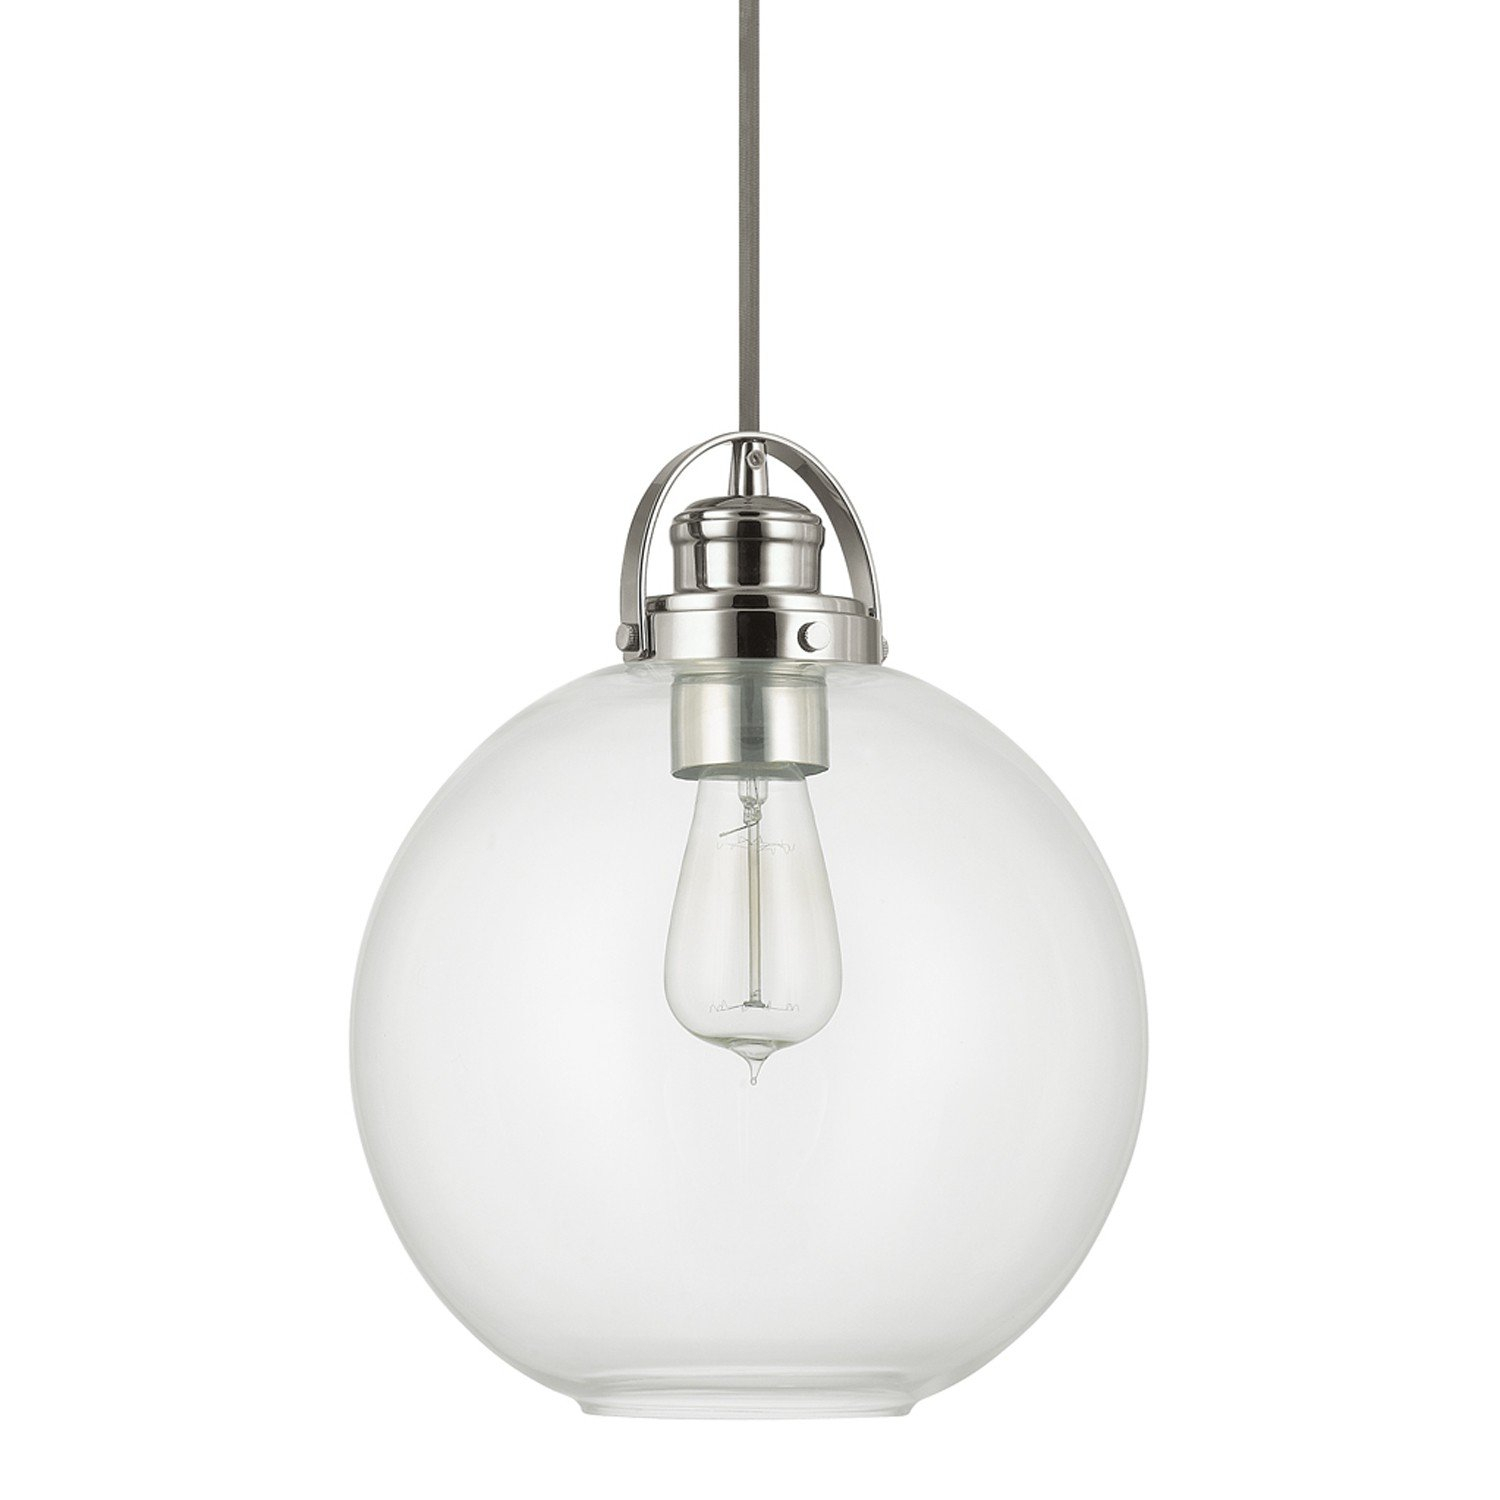 Betsy 1 Light Single Globe Pendant & Reviews | Joss & Main In Betsy 1 Light Single Globe Pendants (View 2 of 30)